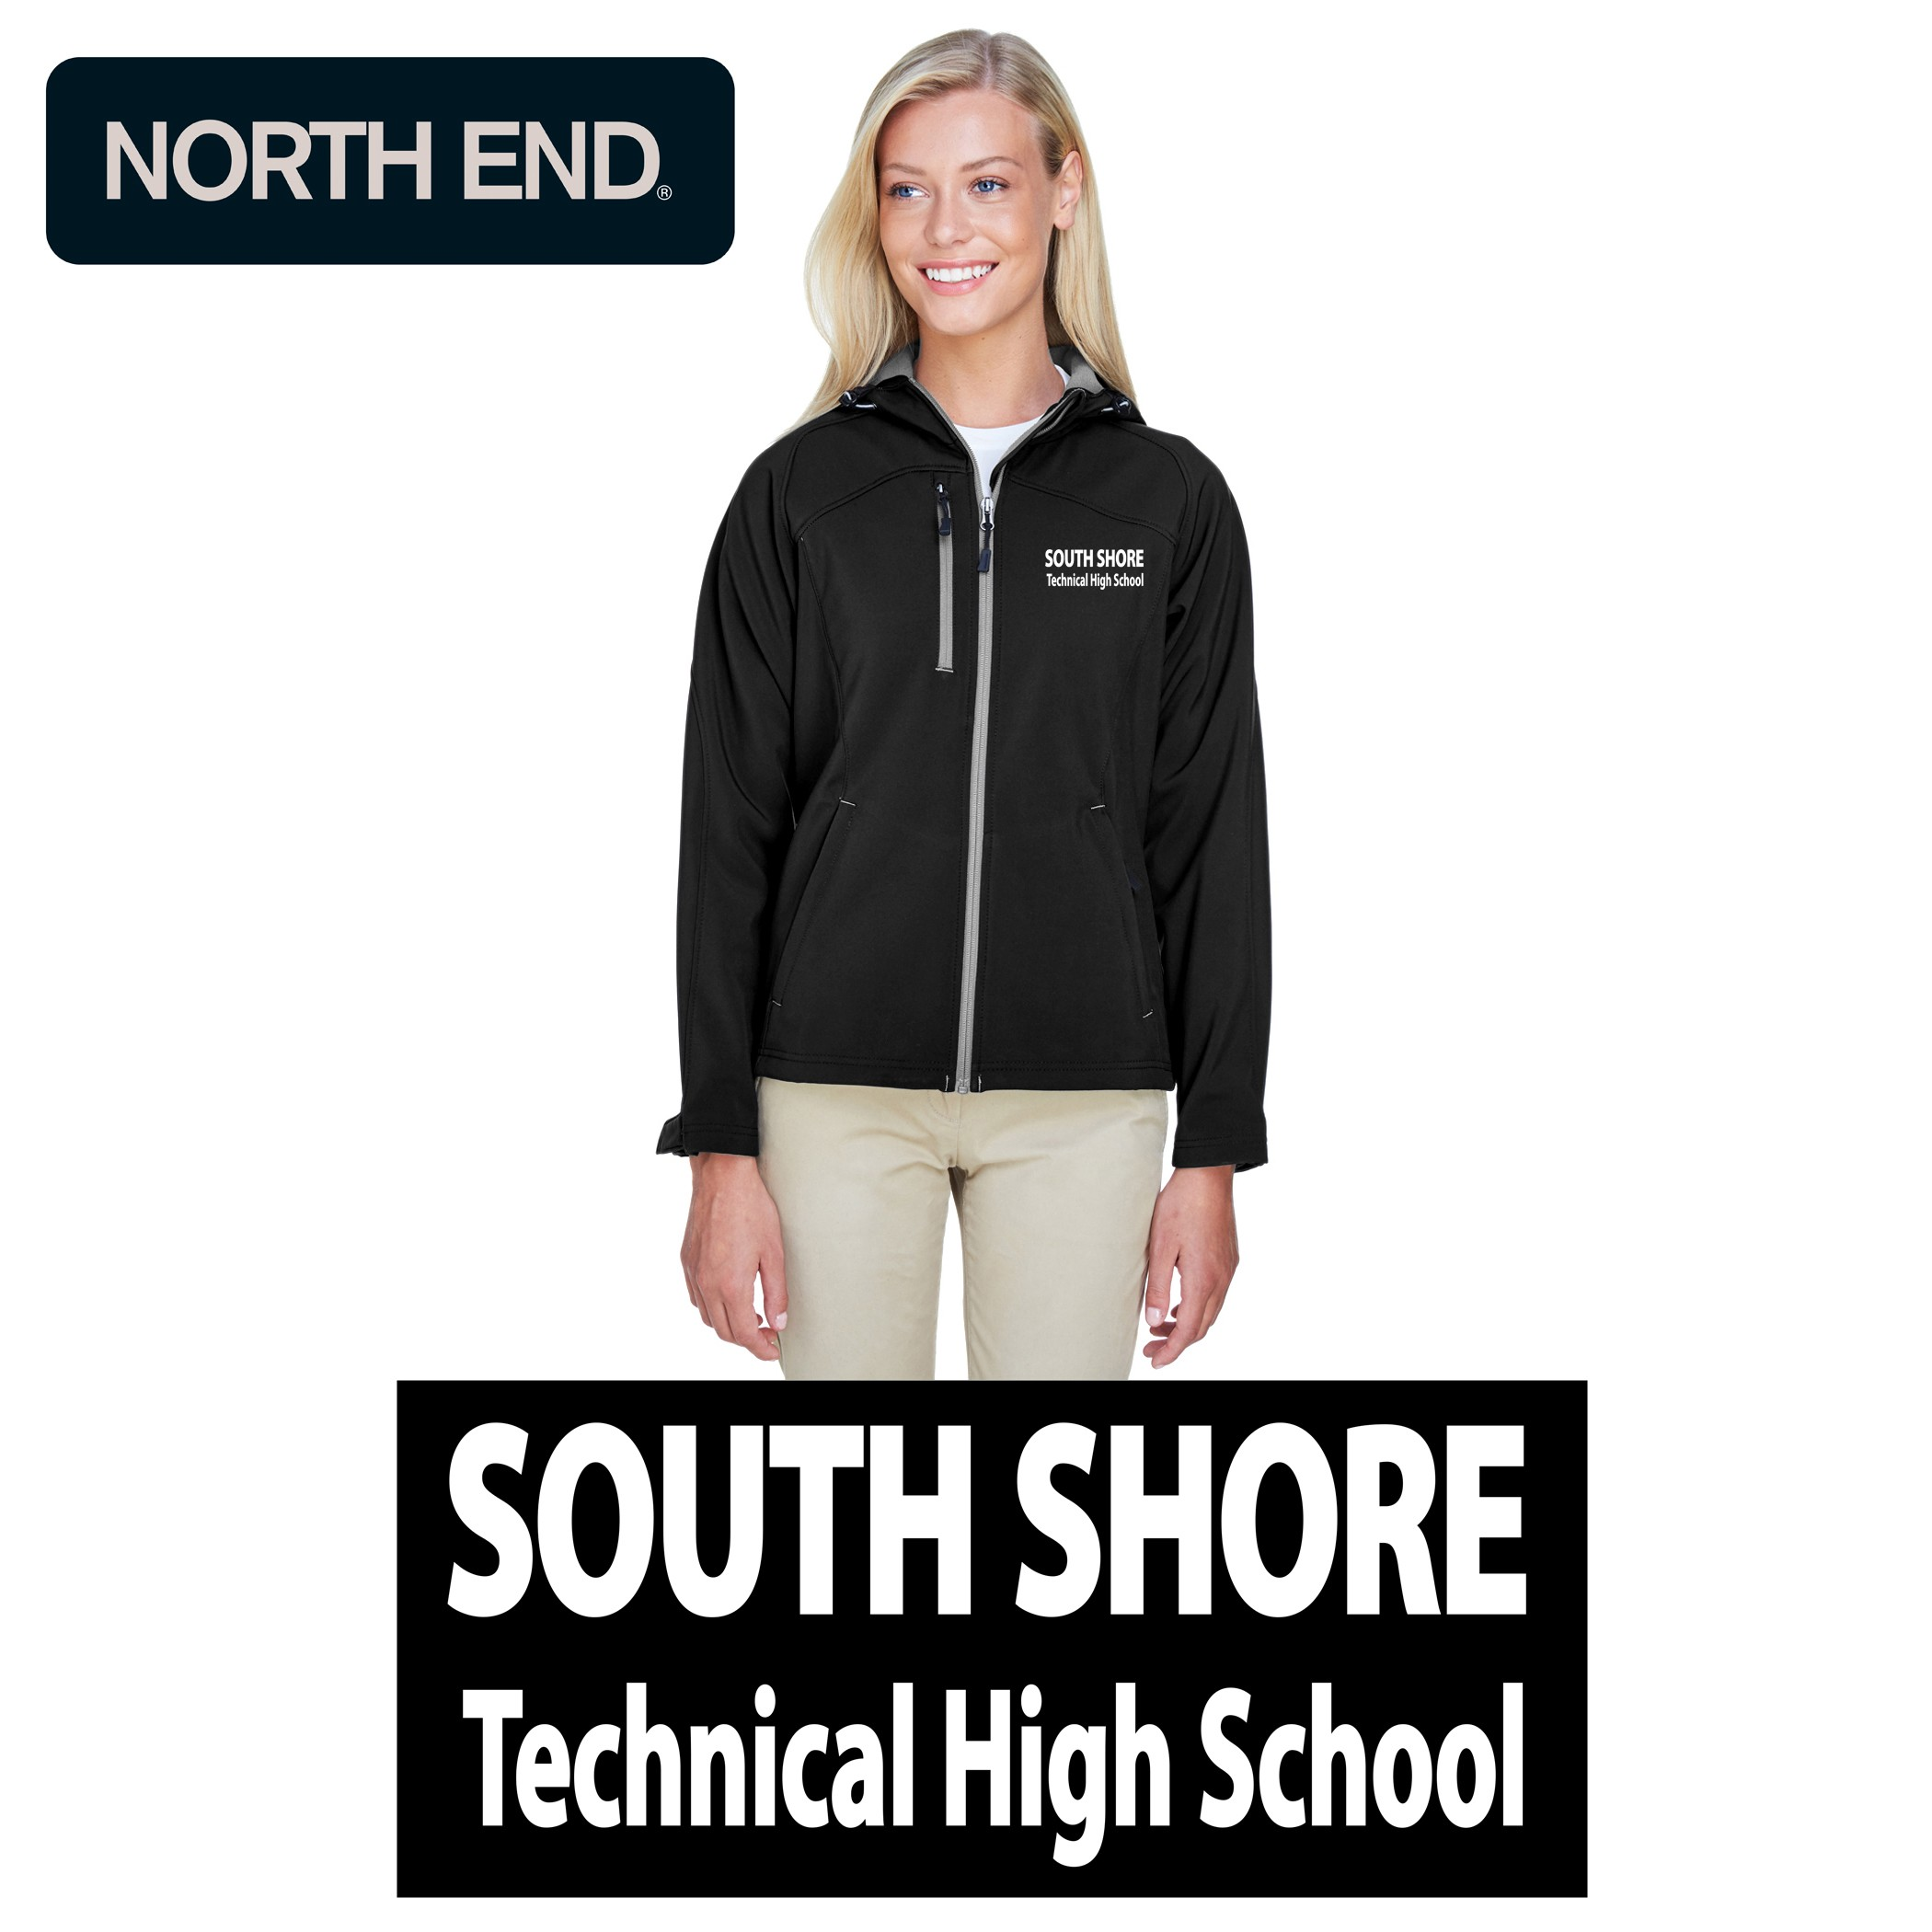 South Shore Technical High School Ash City - North End Ladies' Prospect Two-Layer Fleece Bonded Soft Shell Hooded Jacket